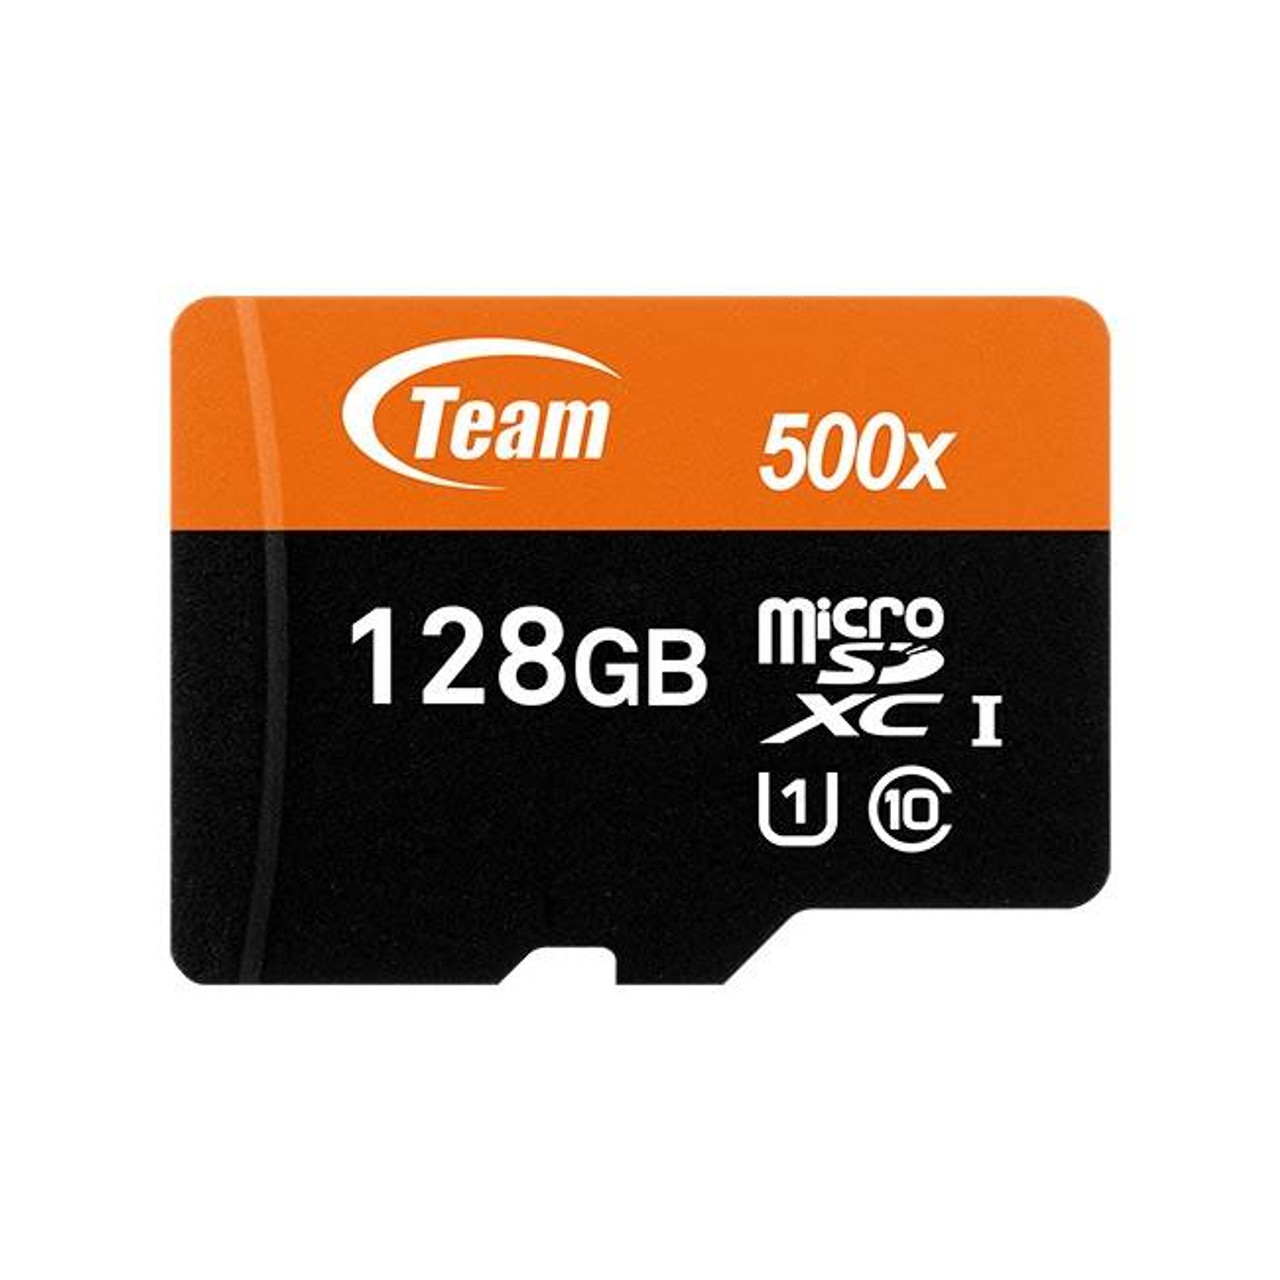 Image for Team microSDXC UHS-I 128GB Class 10 MicroSD Card - TUSDX128GUHS03 CX Computer Superstore